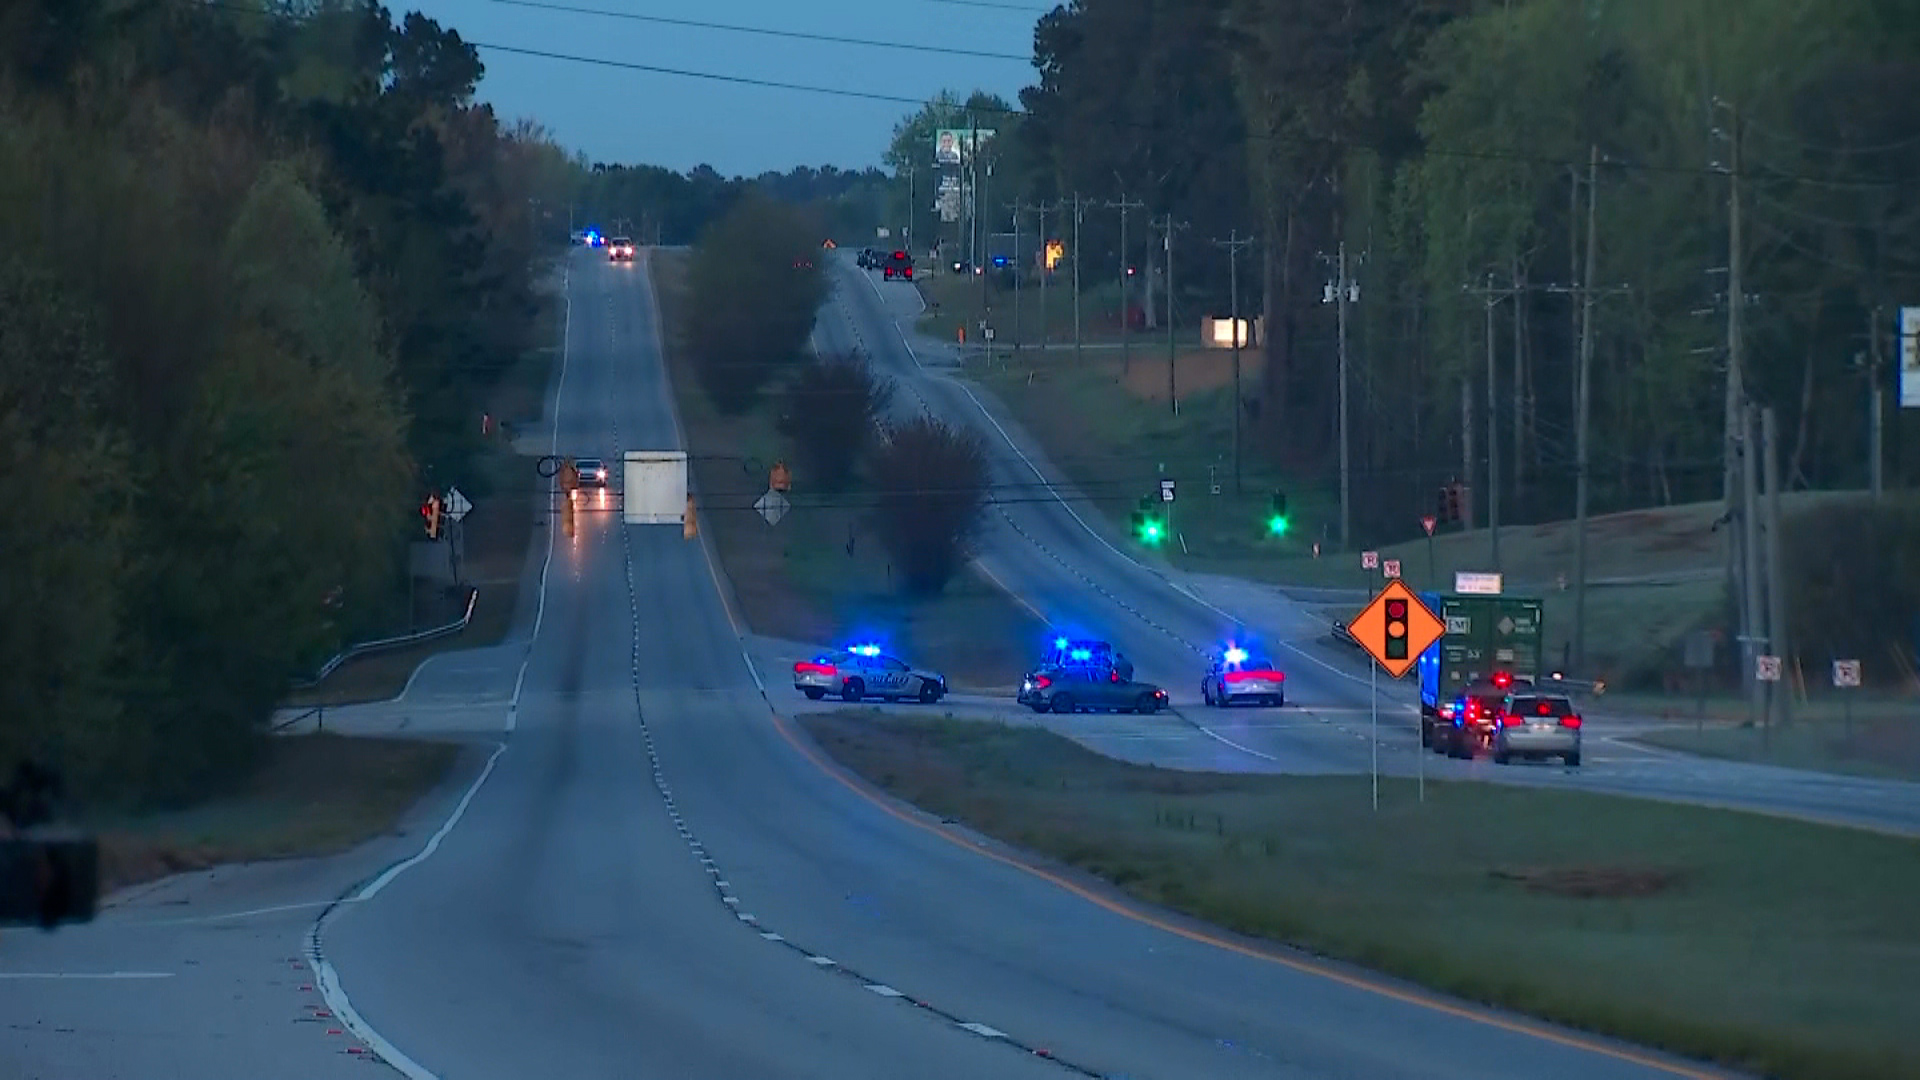 Suspect killed, 3 officers injured during police chase in Georgia